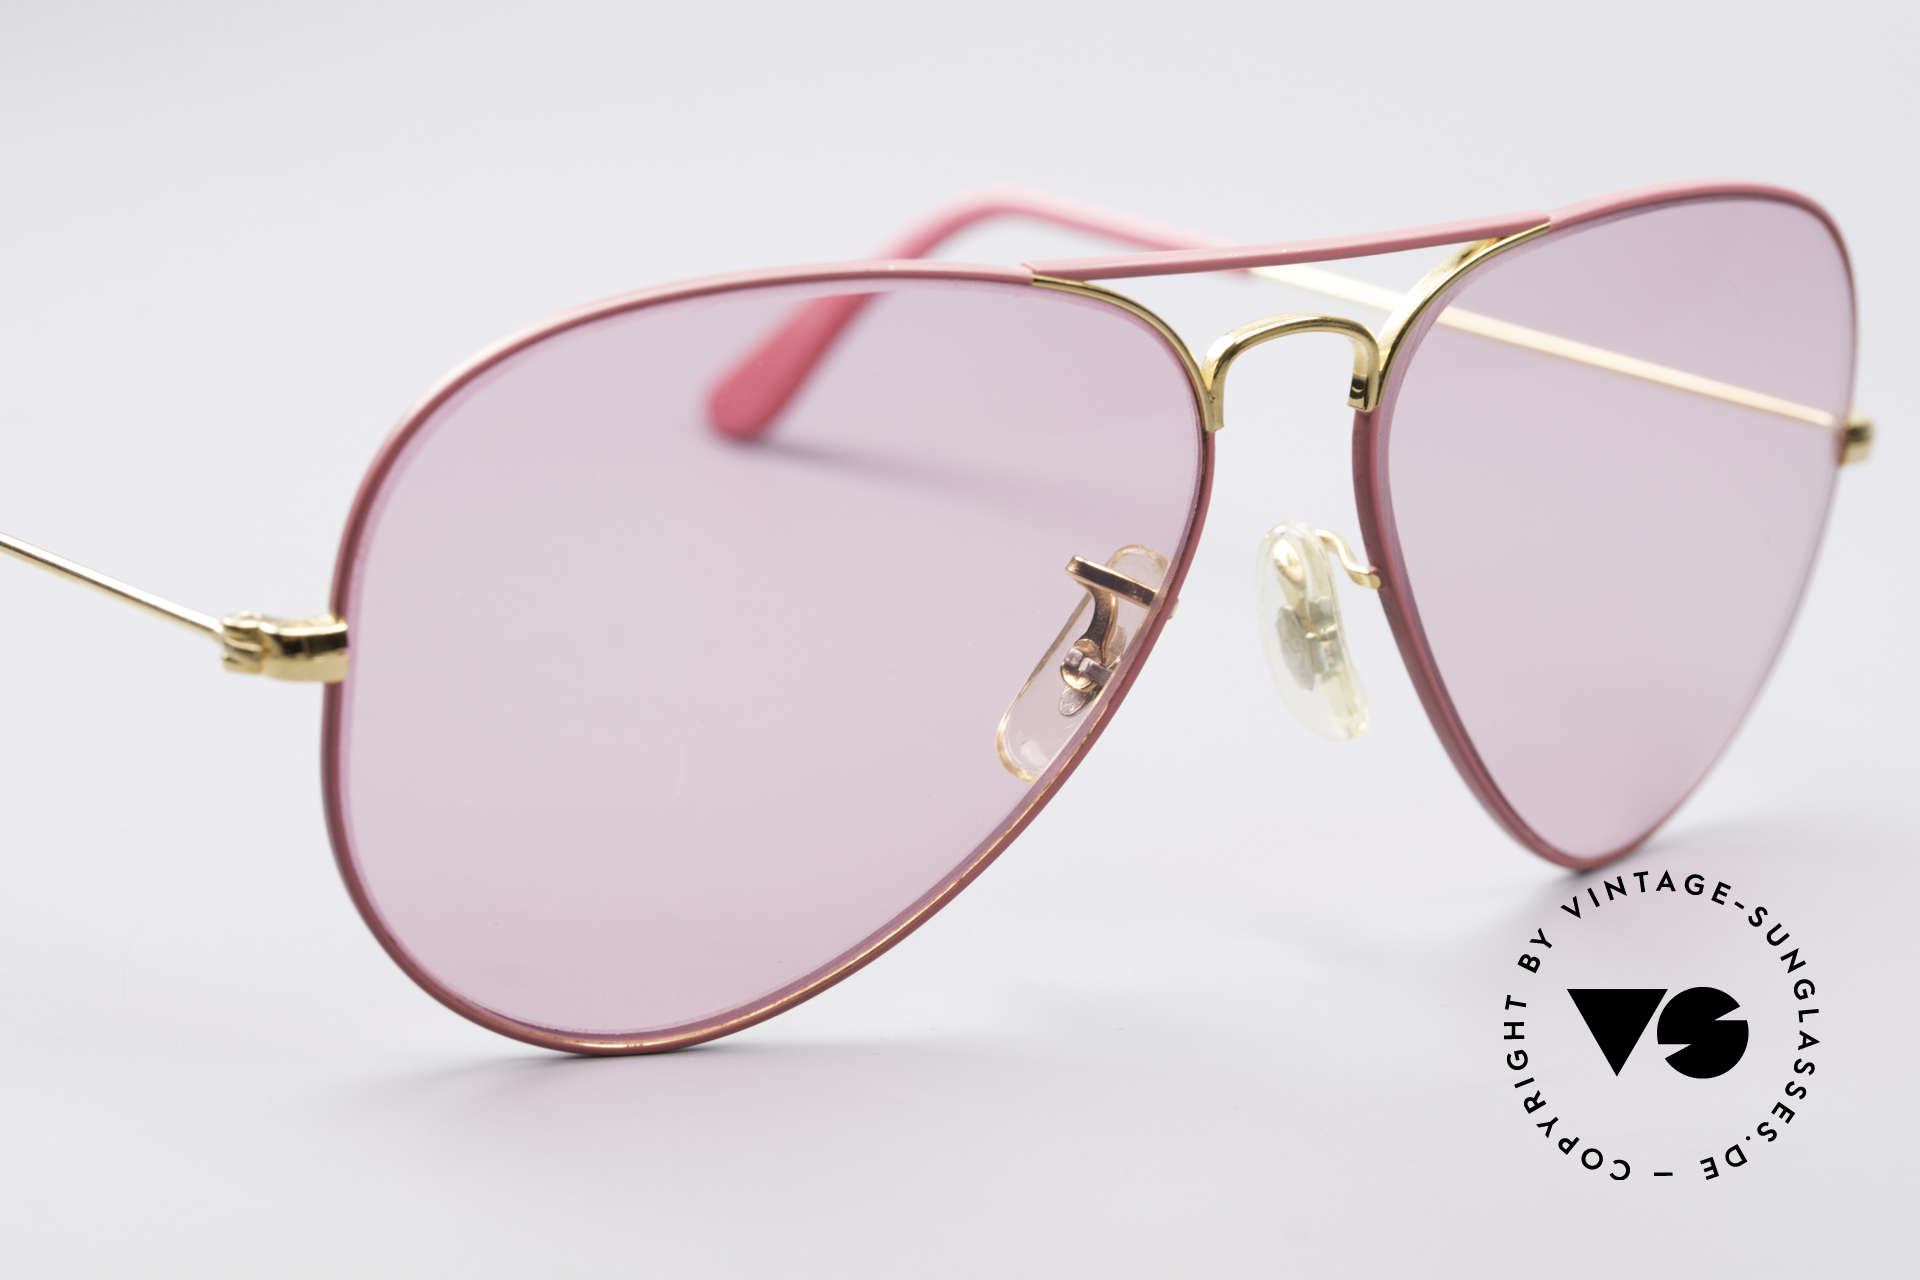 Ray Ban Large Metal Pink Ladies Sunglasses, NO RETRO sunglasses, but an old USA-ORIGINAL, Made for Men